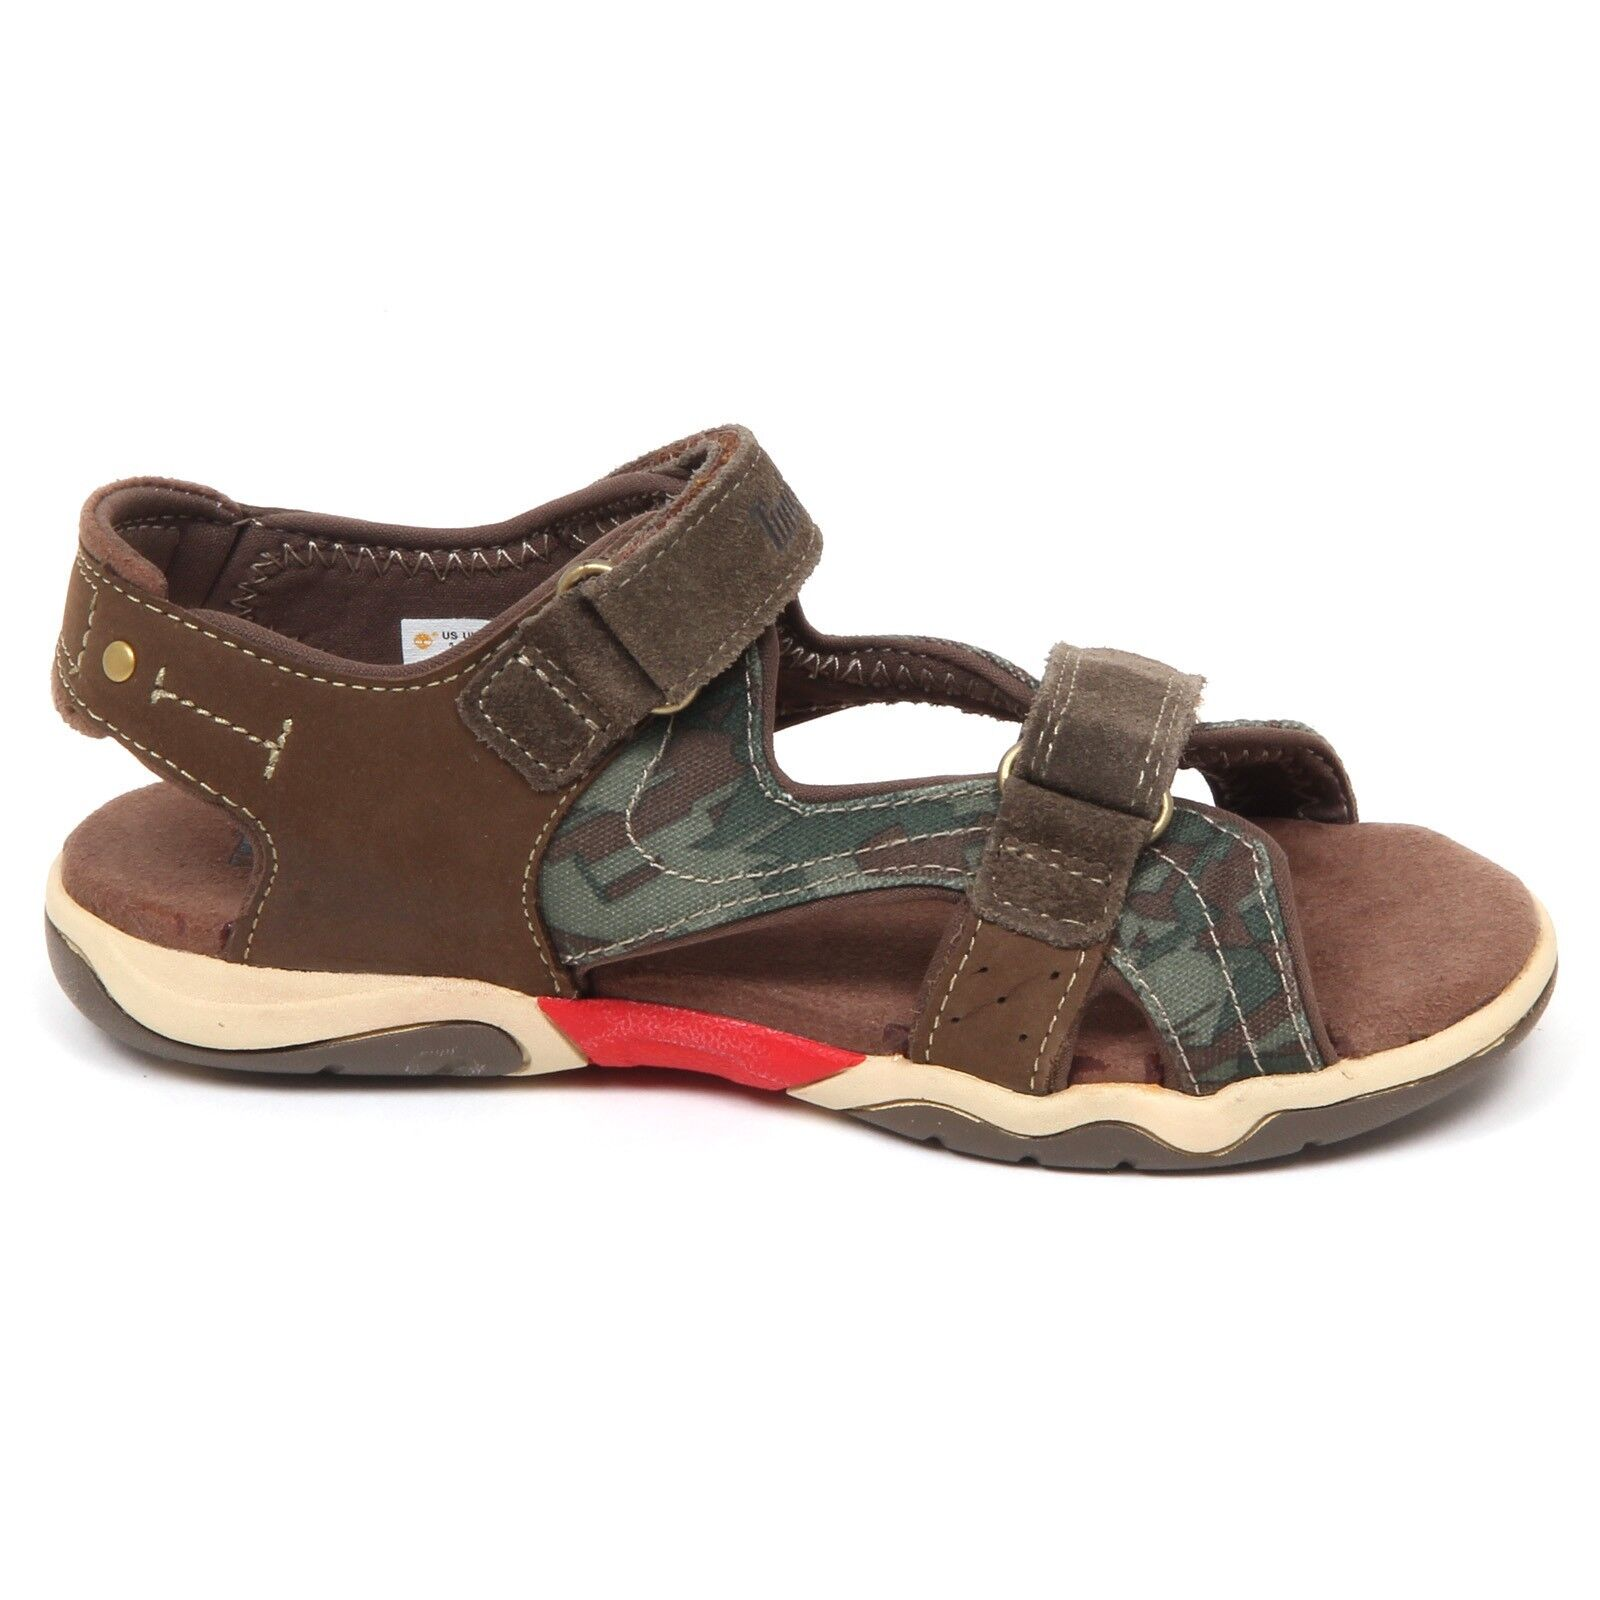 E6332 sandalo bimbo brown/green TIMBERLAND scarpe shoe baby kid boy 1